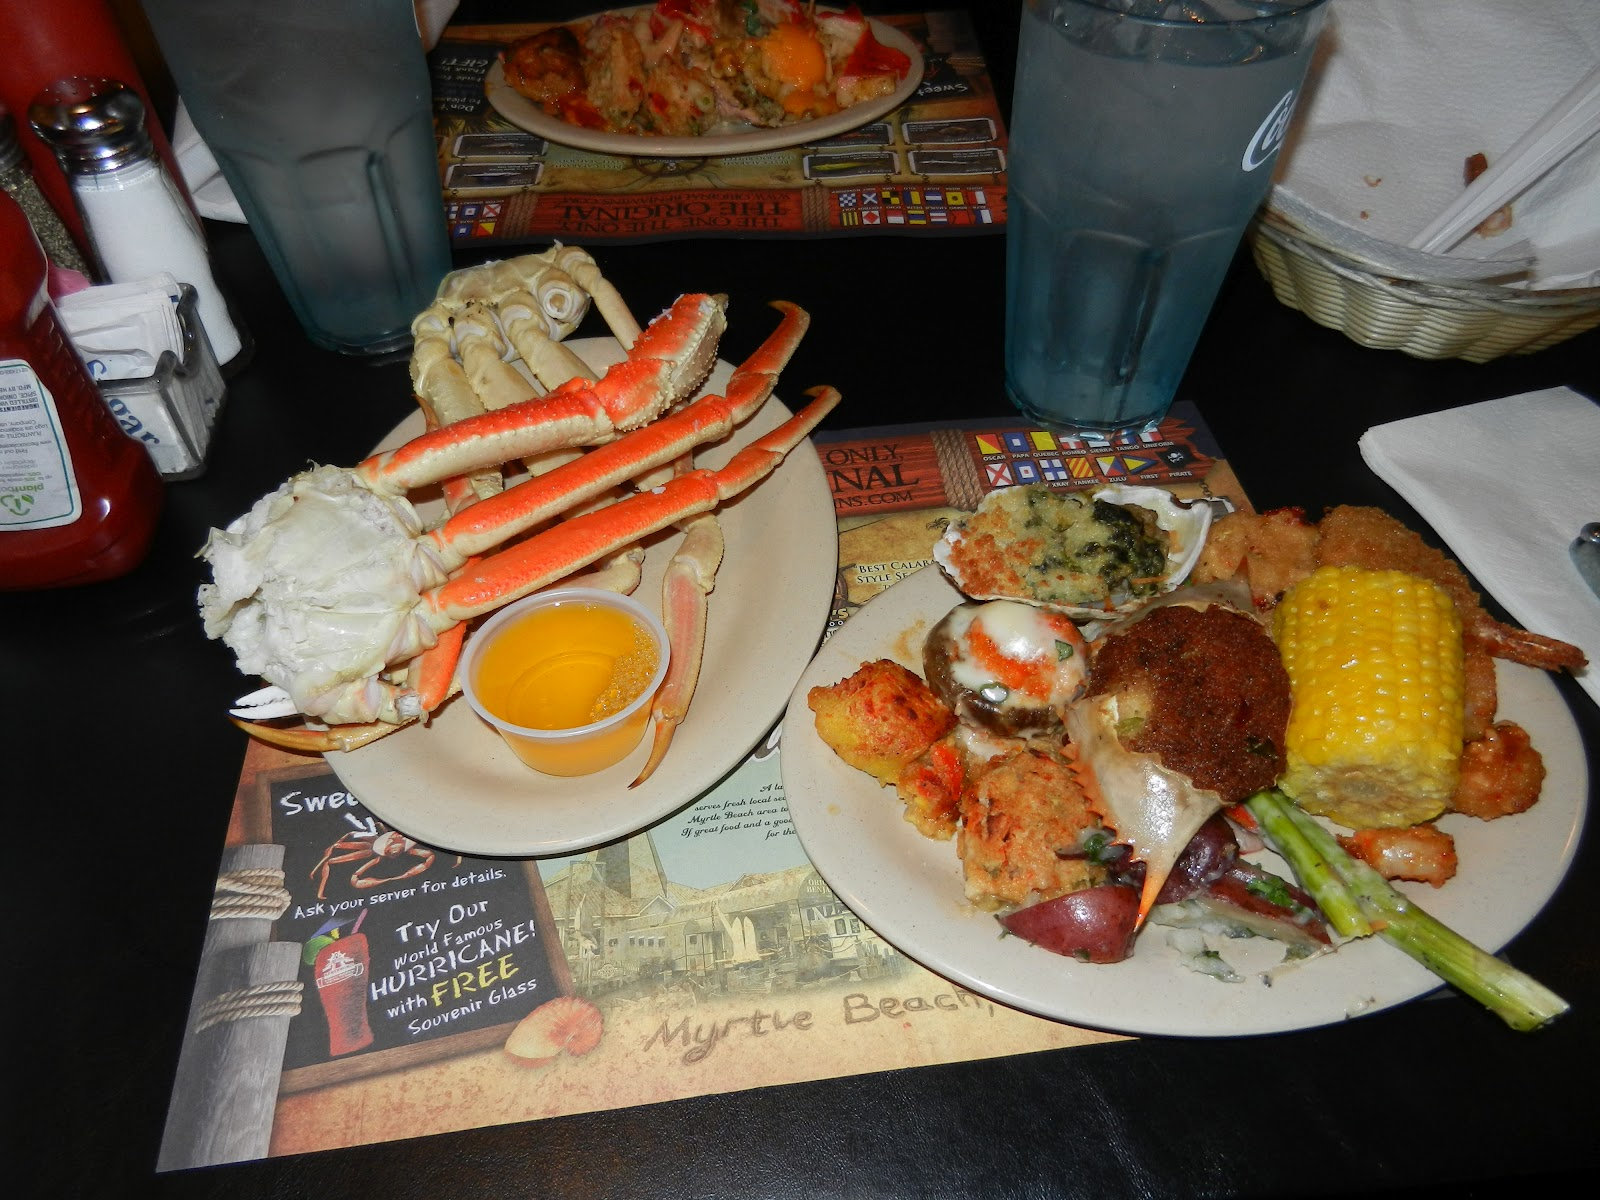 myrtle beach seafood try the original benjamin s calabash seafood rh reservemyrtlebeach com benjamin's calabash seafood buffet myrtle beach south carolina captain benjamin's seafood myrtle beach buffet price